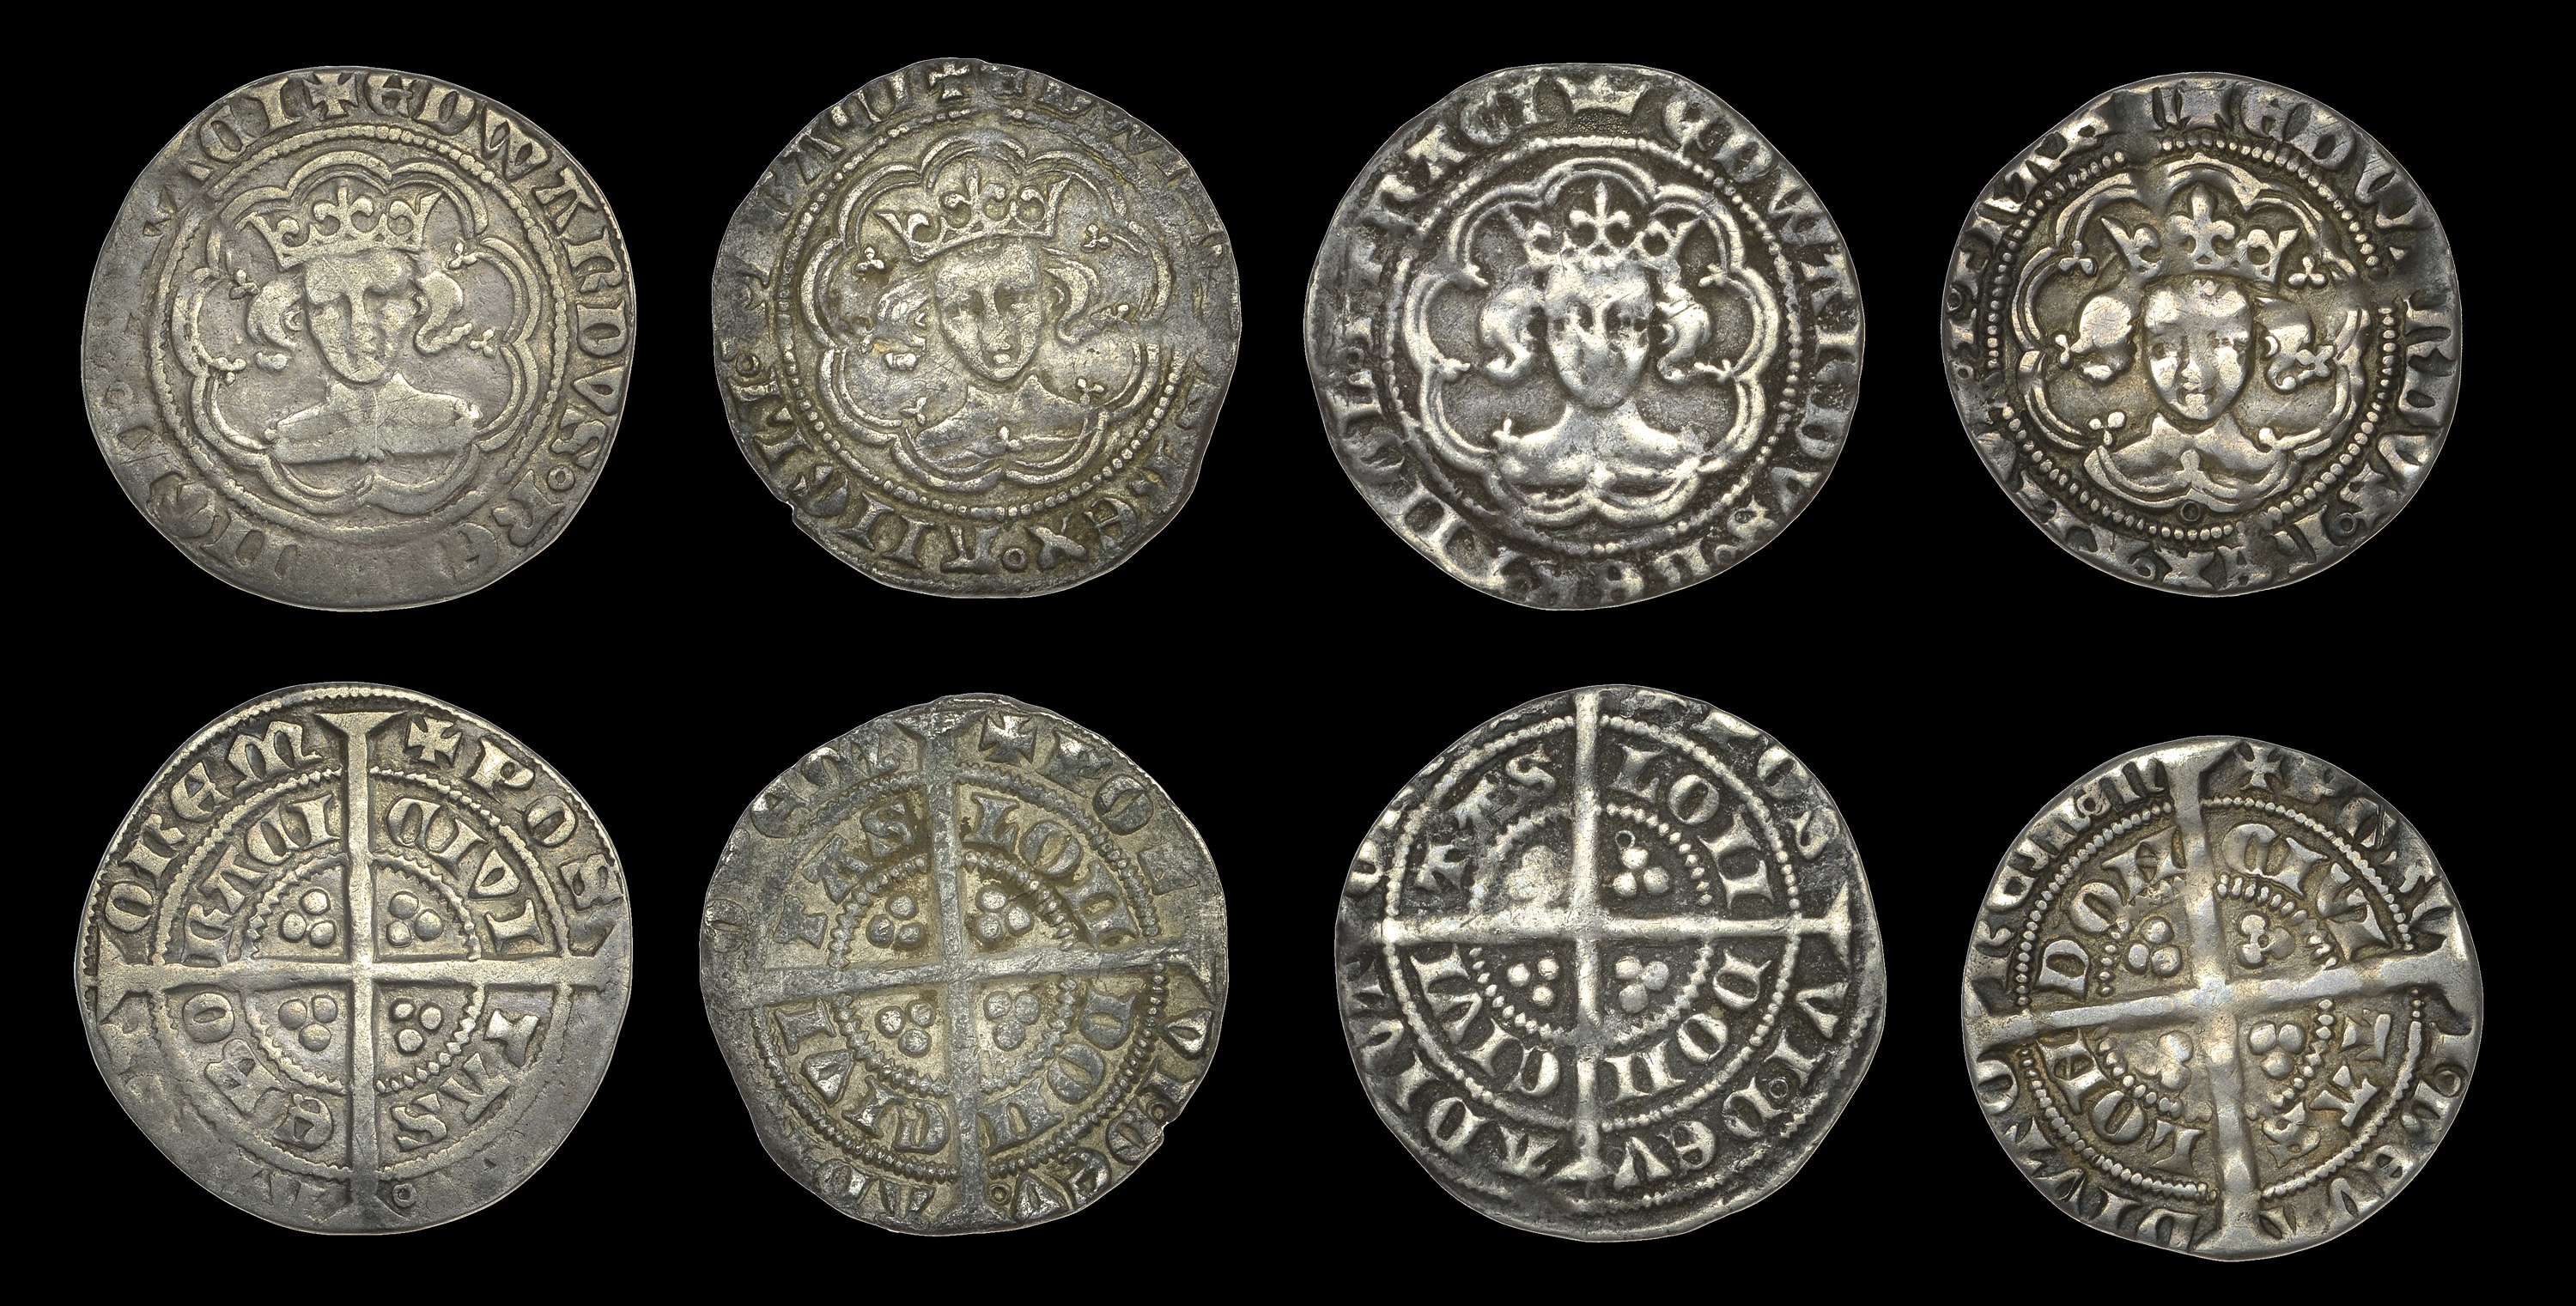 Lot 54 - English Coins from the Collection of the Late Dr John Hulett (Part IX)